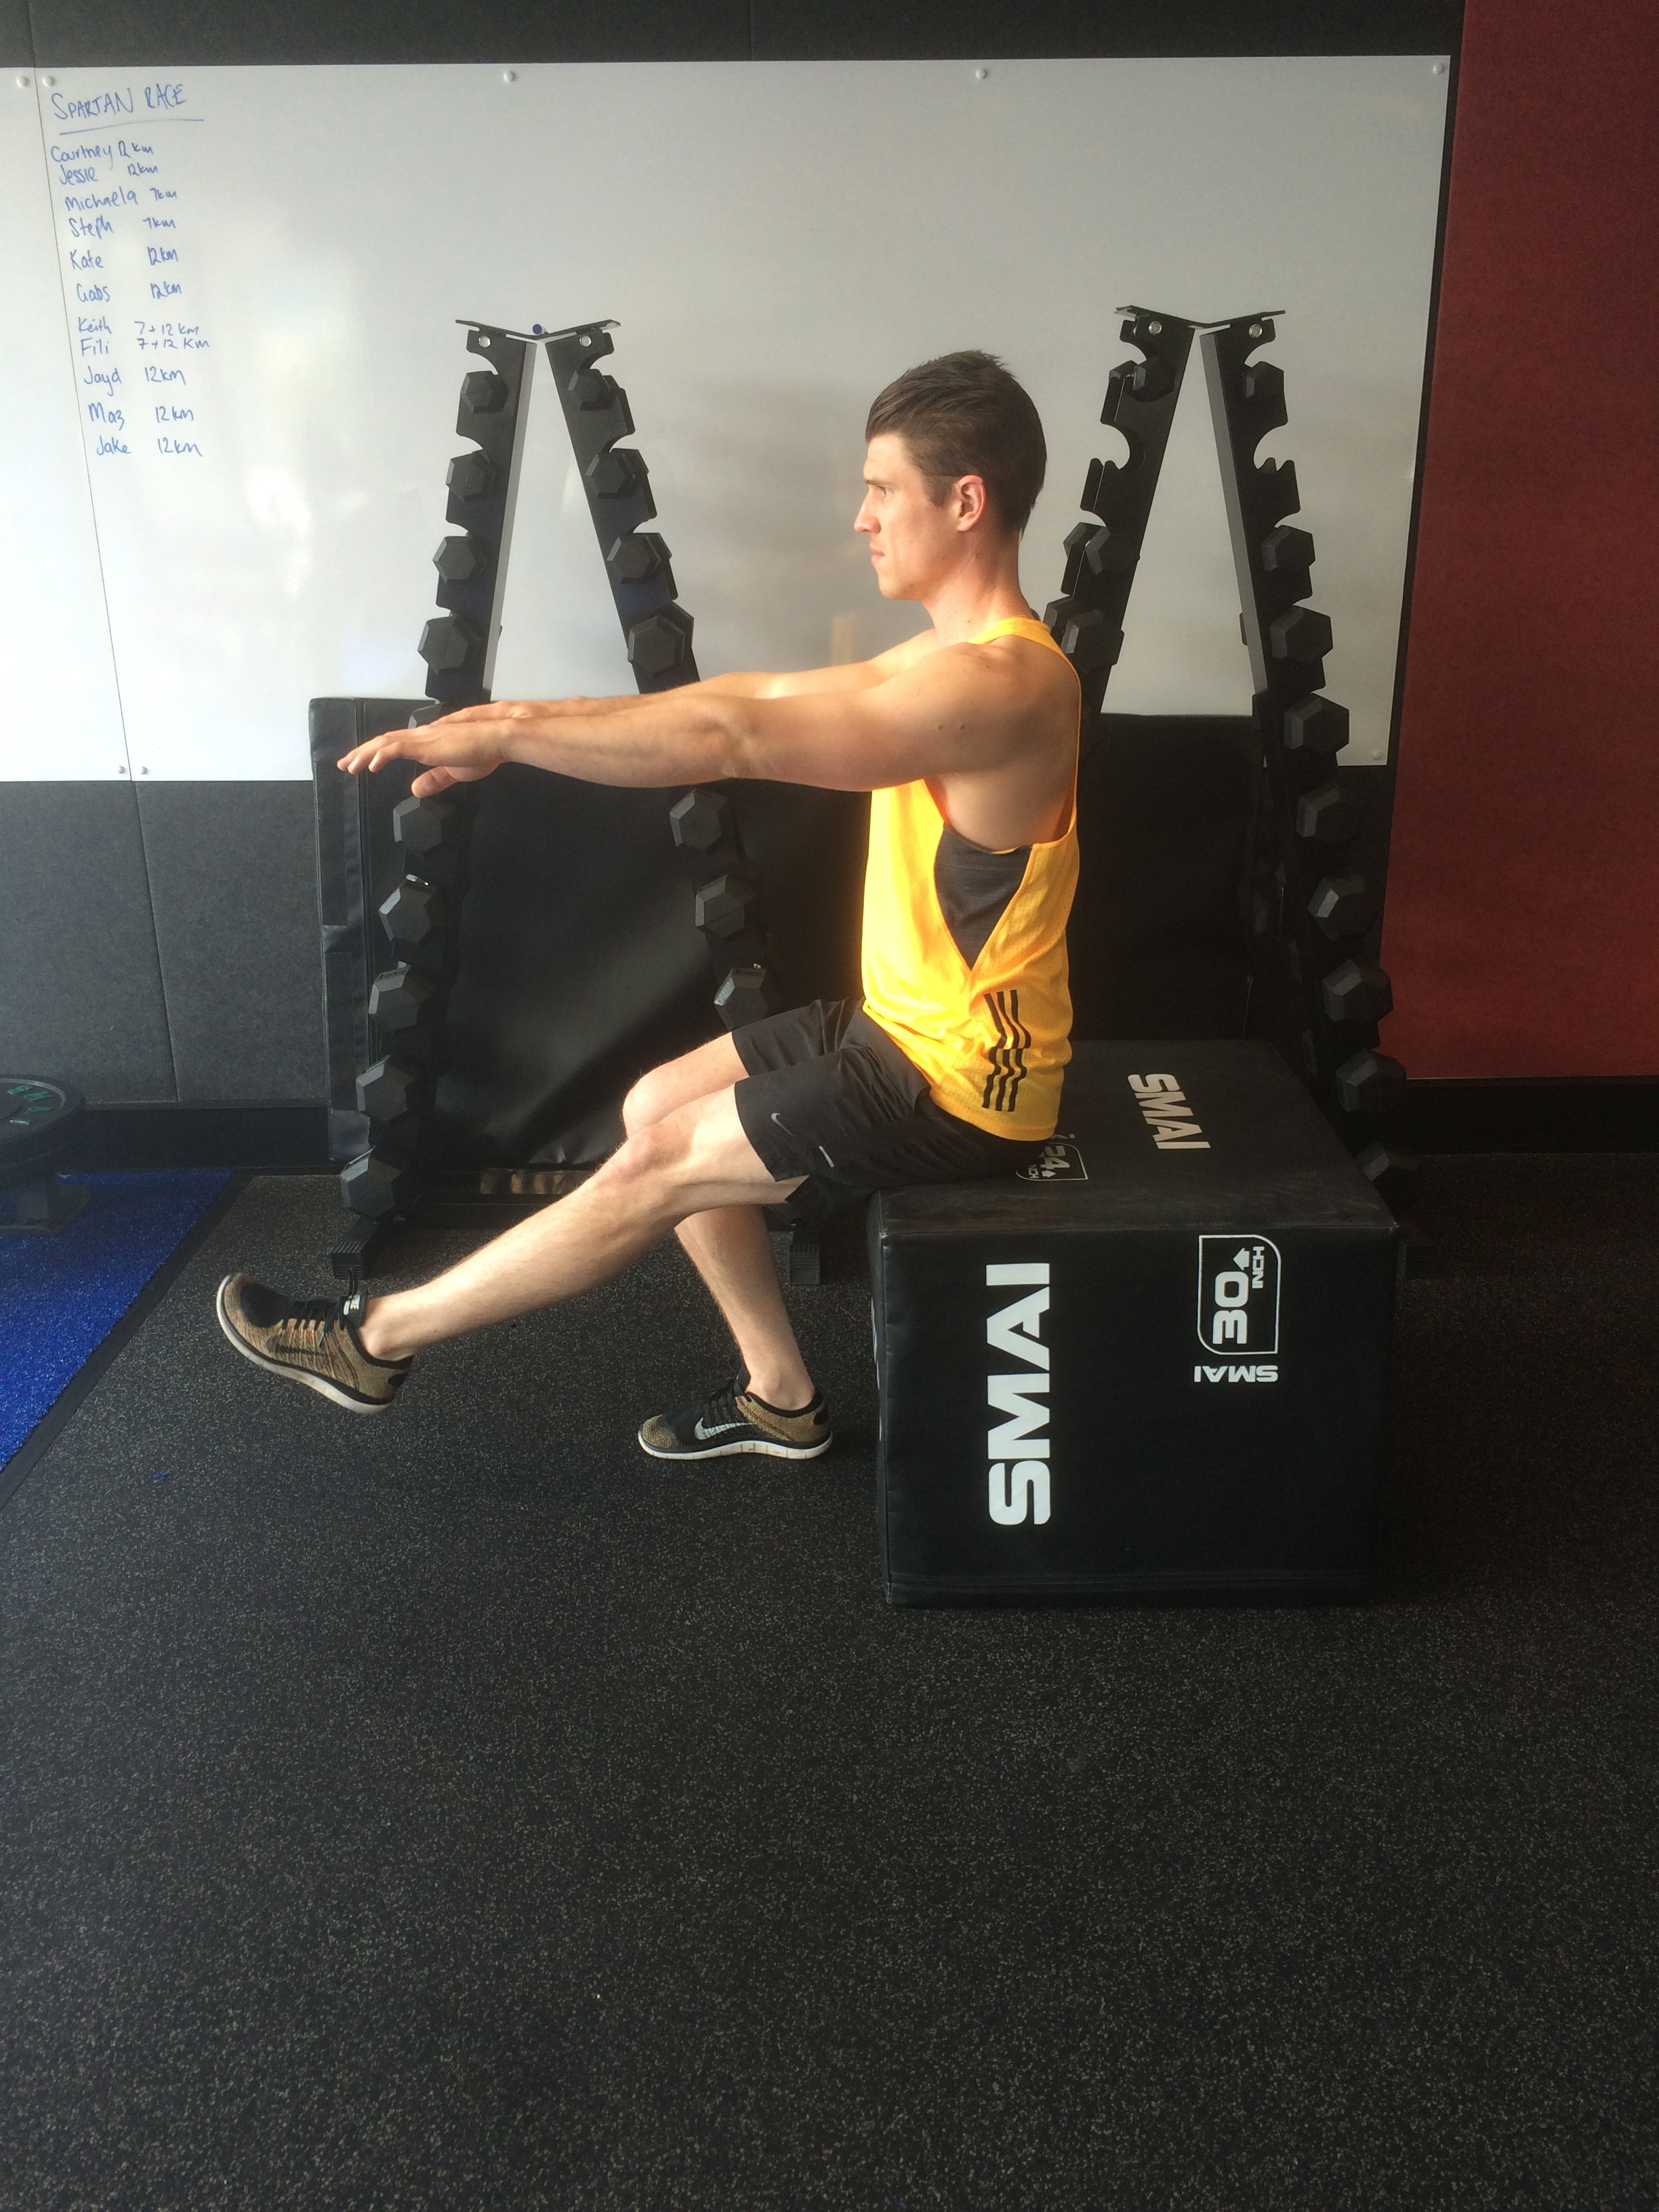 squat technique revision at the functional movement club, your local northern beachs chiropractor servicing the gladesville area